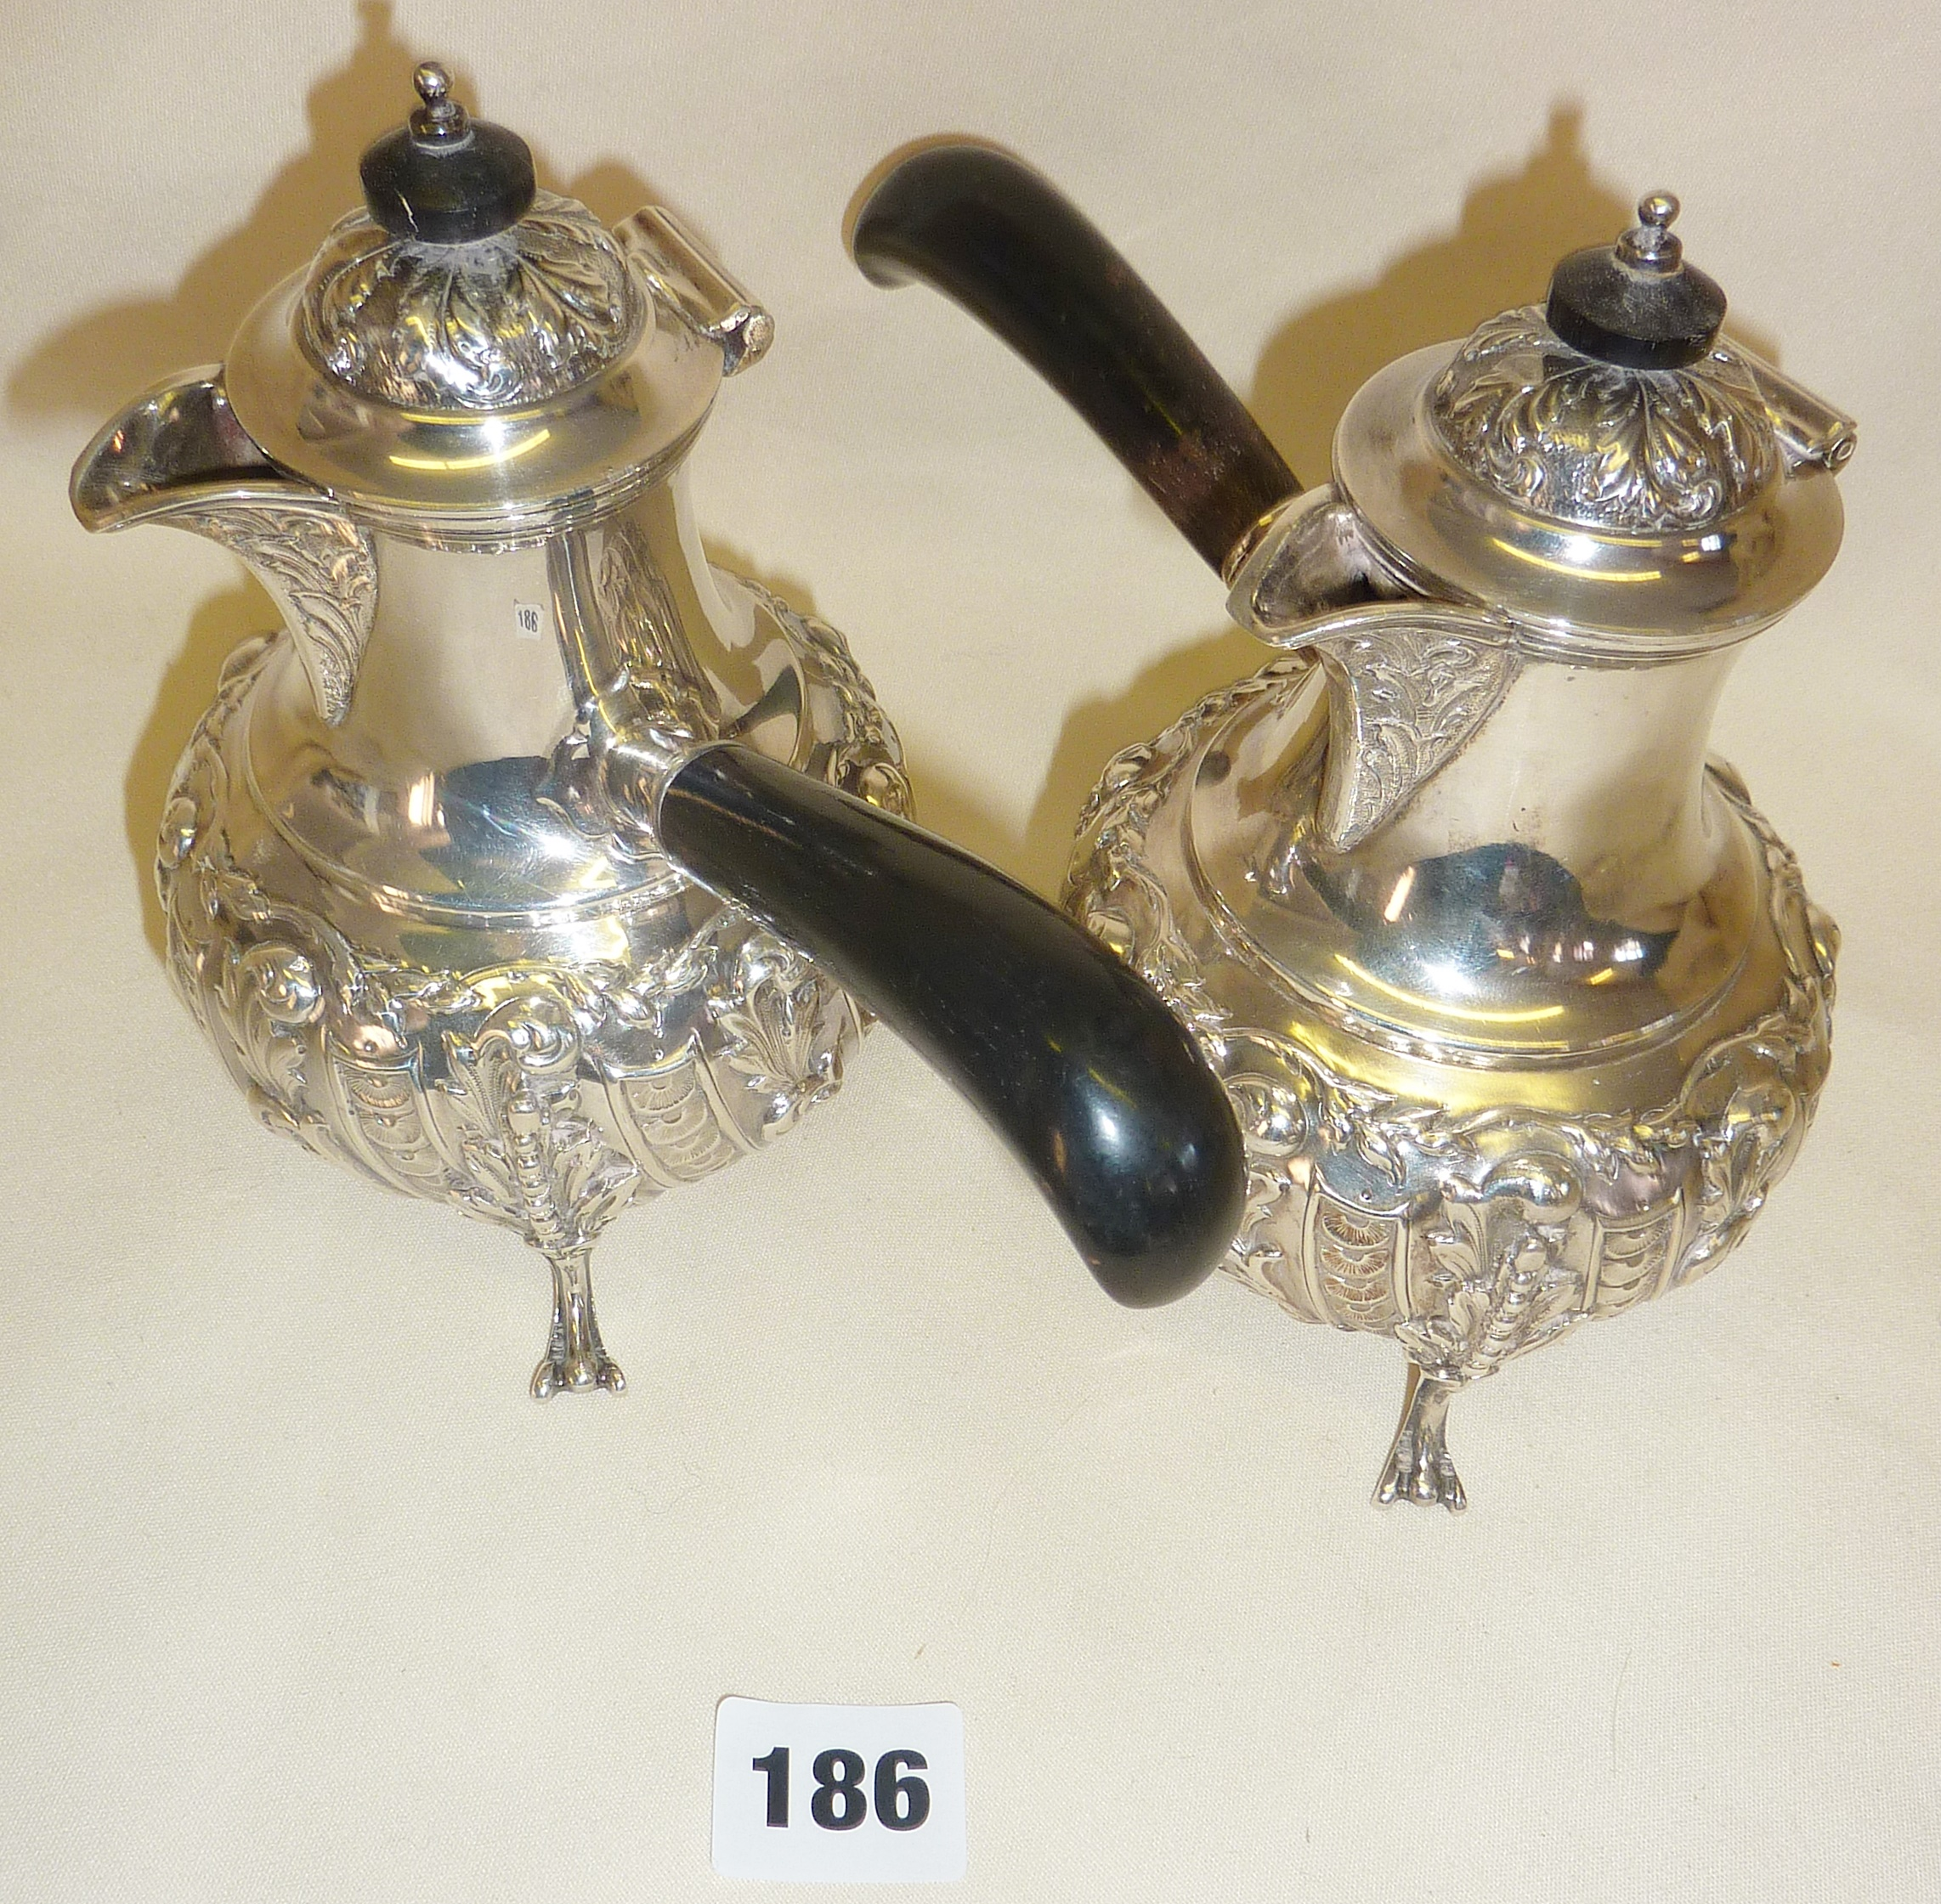 Pair of finely chased repoussé silver chocolate pots with ebonised handles, hallmarked for London